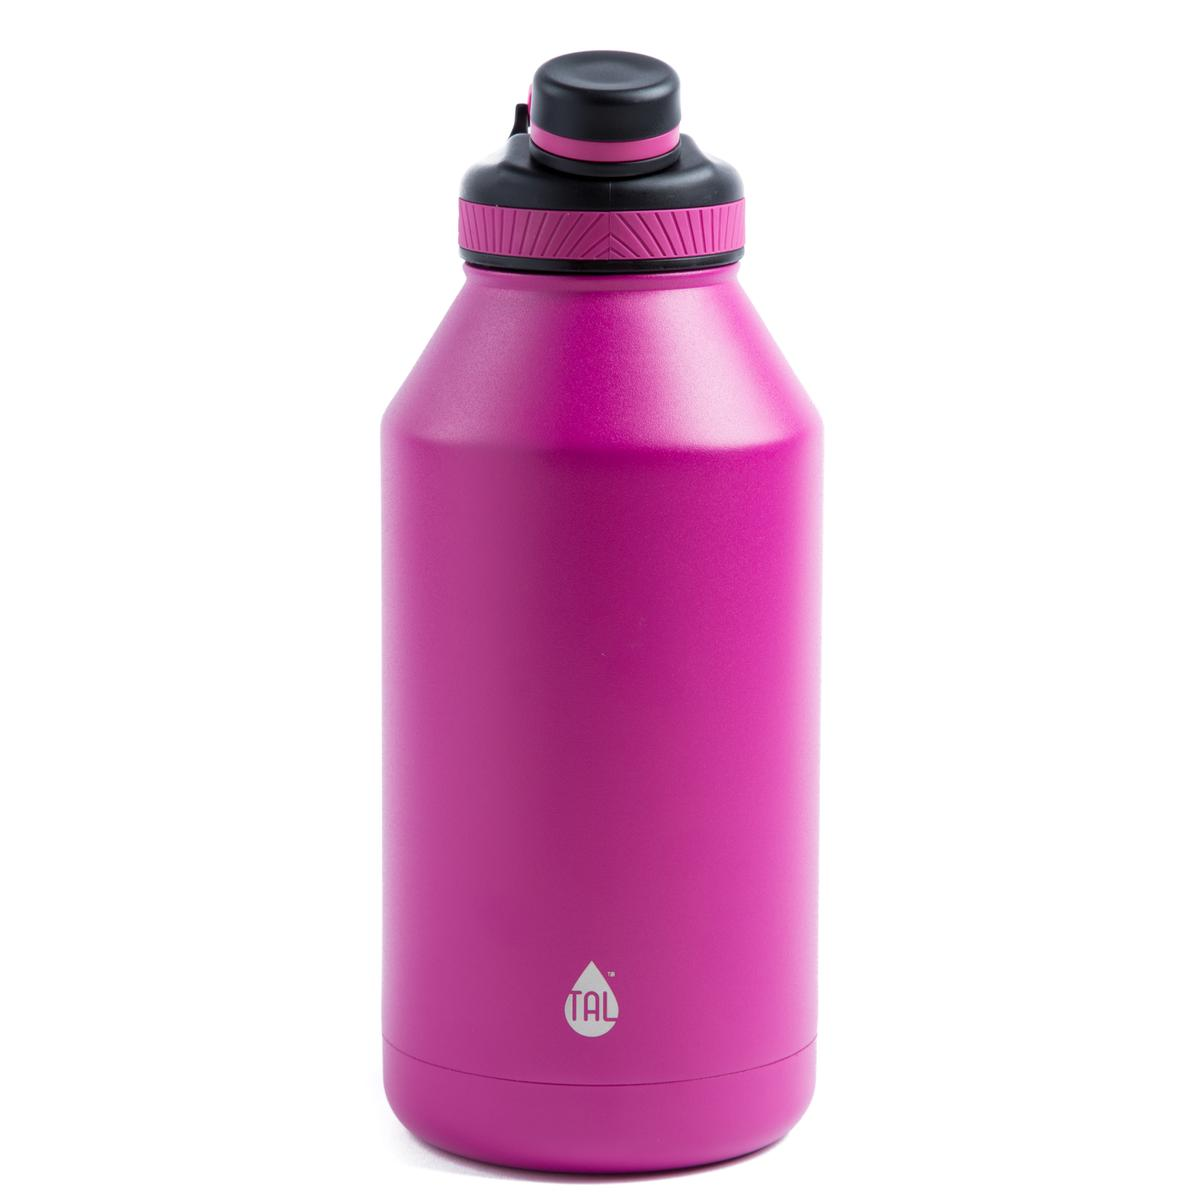 3656d951821 TAL Pink 64oz Double Wall Vacuum Insulated Stainless Steel Ranger Pro Water  Bottle